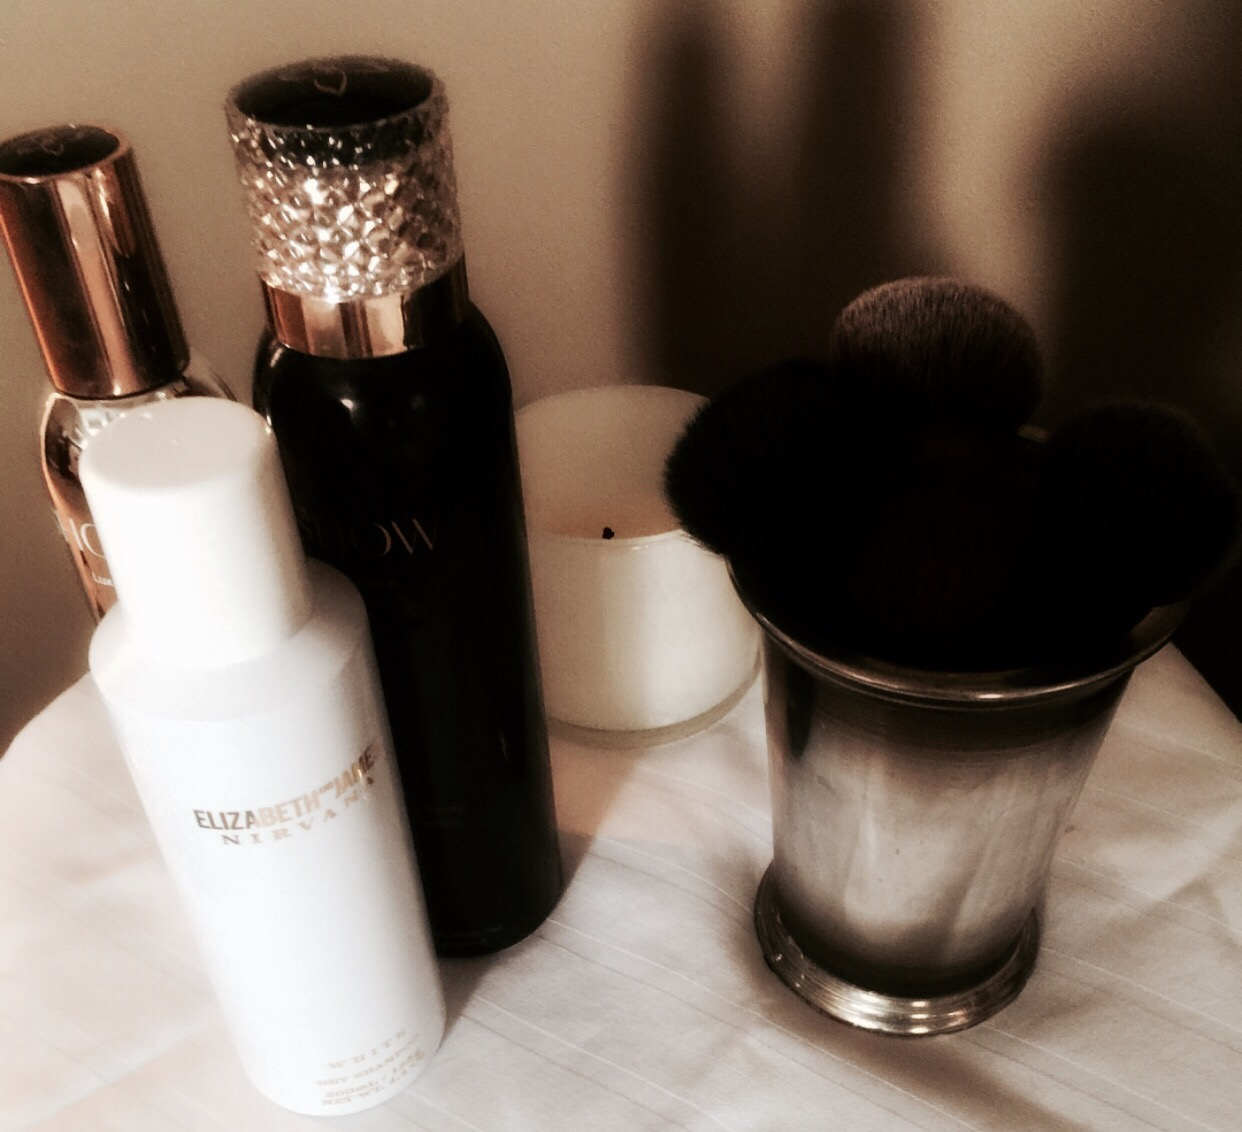 Use makeup brushes? Keep them clean!